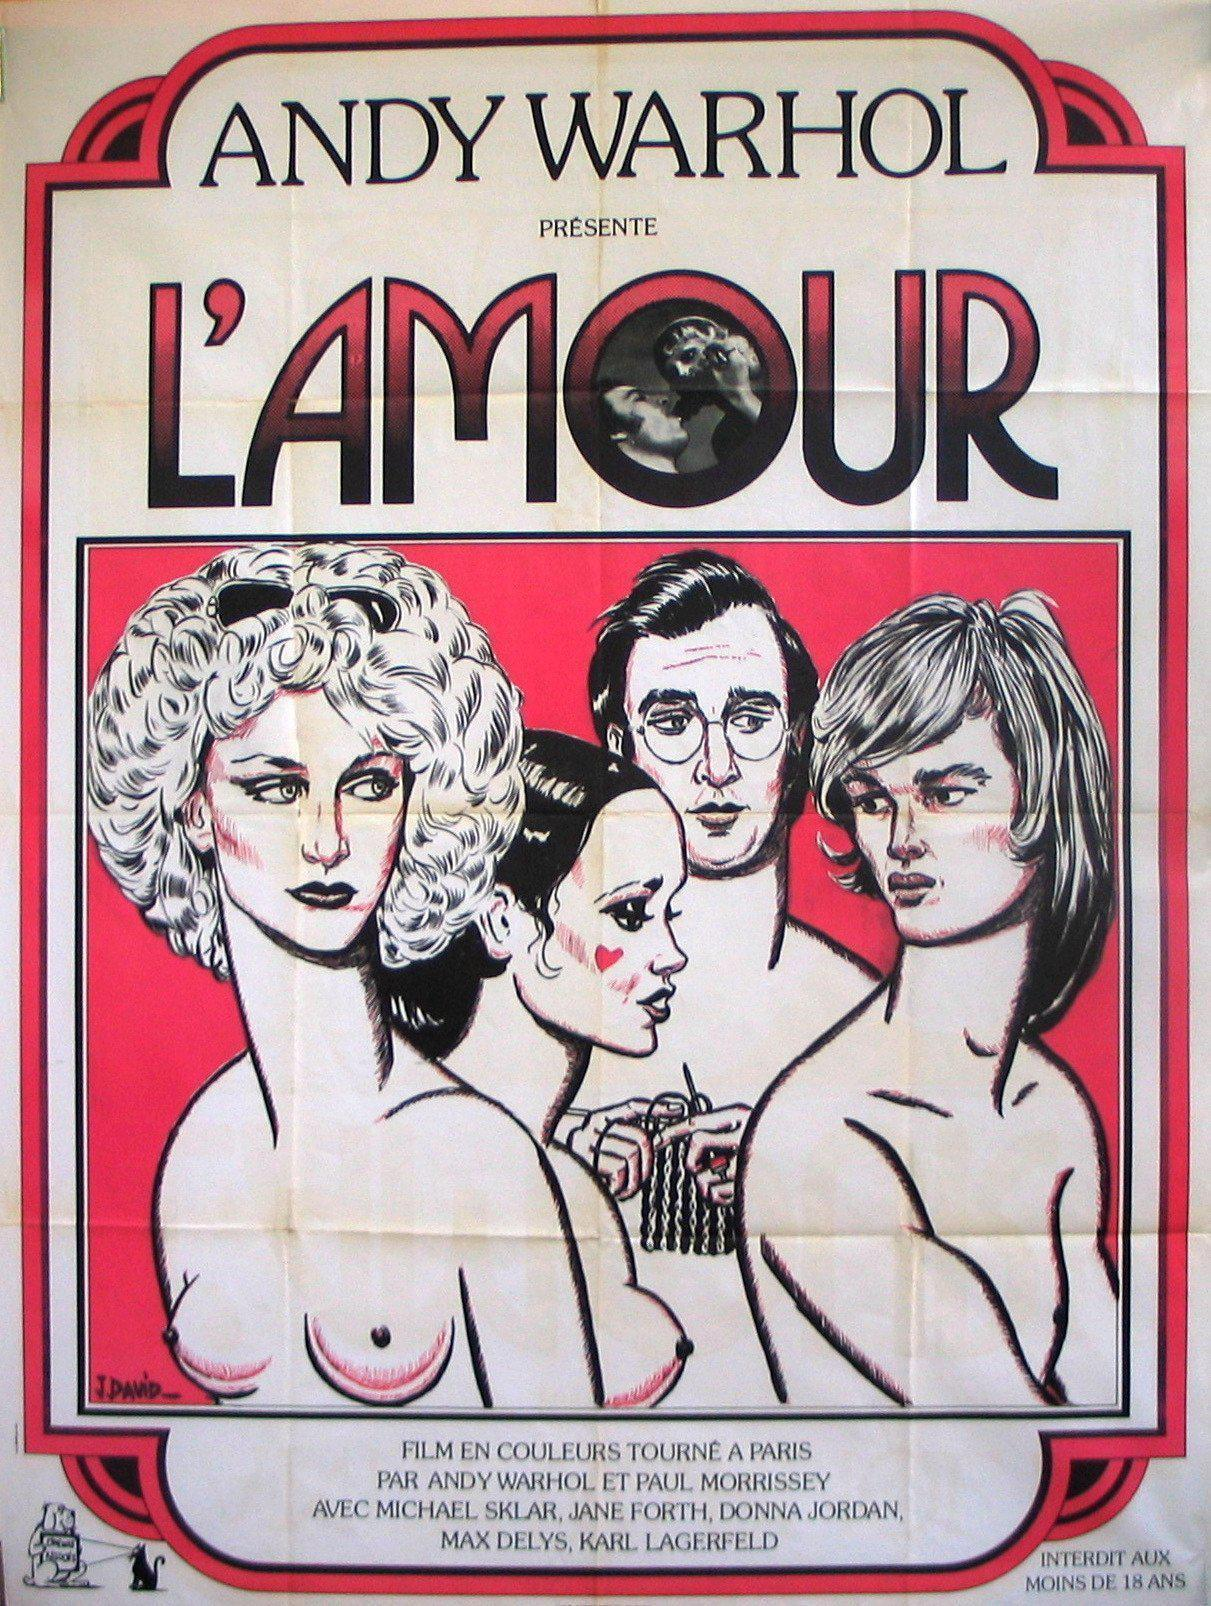 L'Amour (Andy Warhol) French 1 panel (47x63) Original Vintage Movie Poster